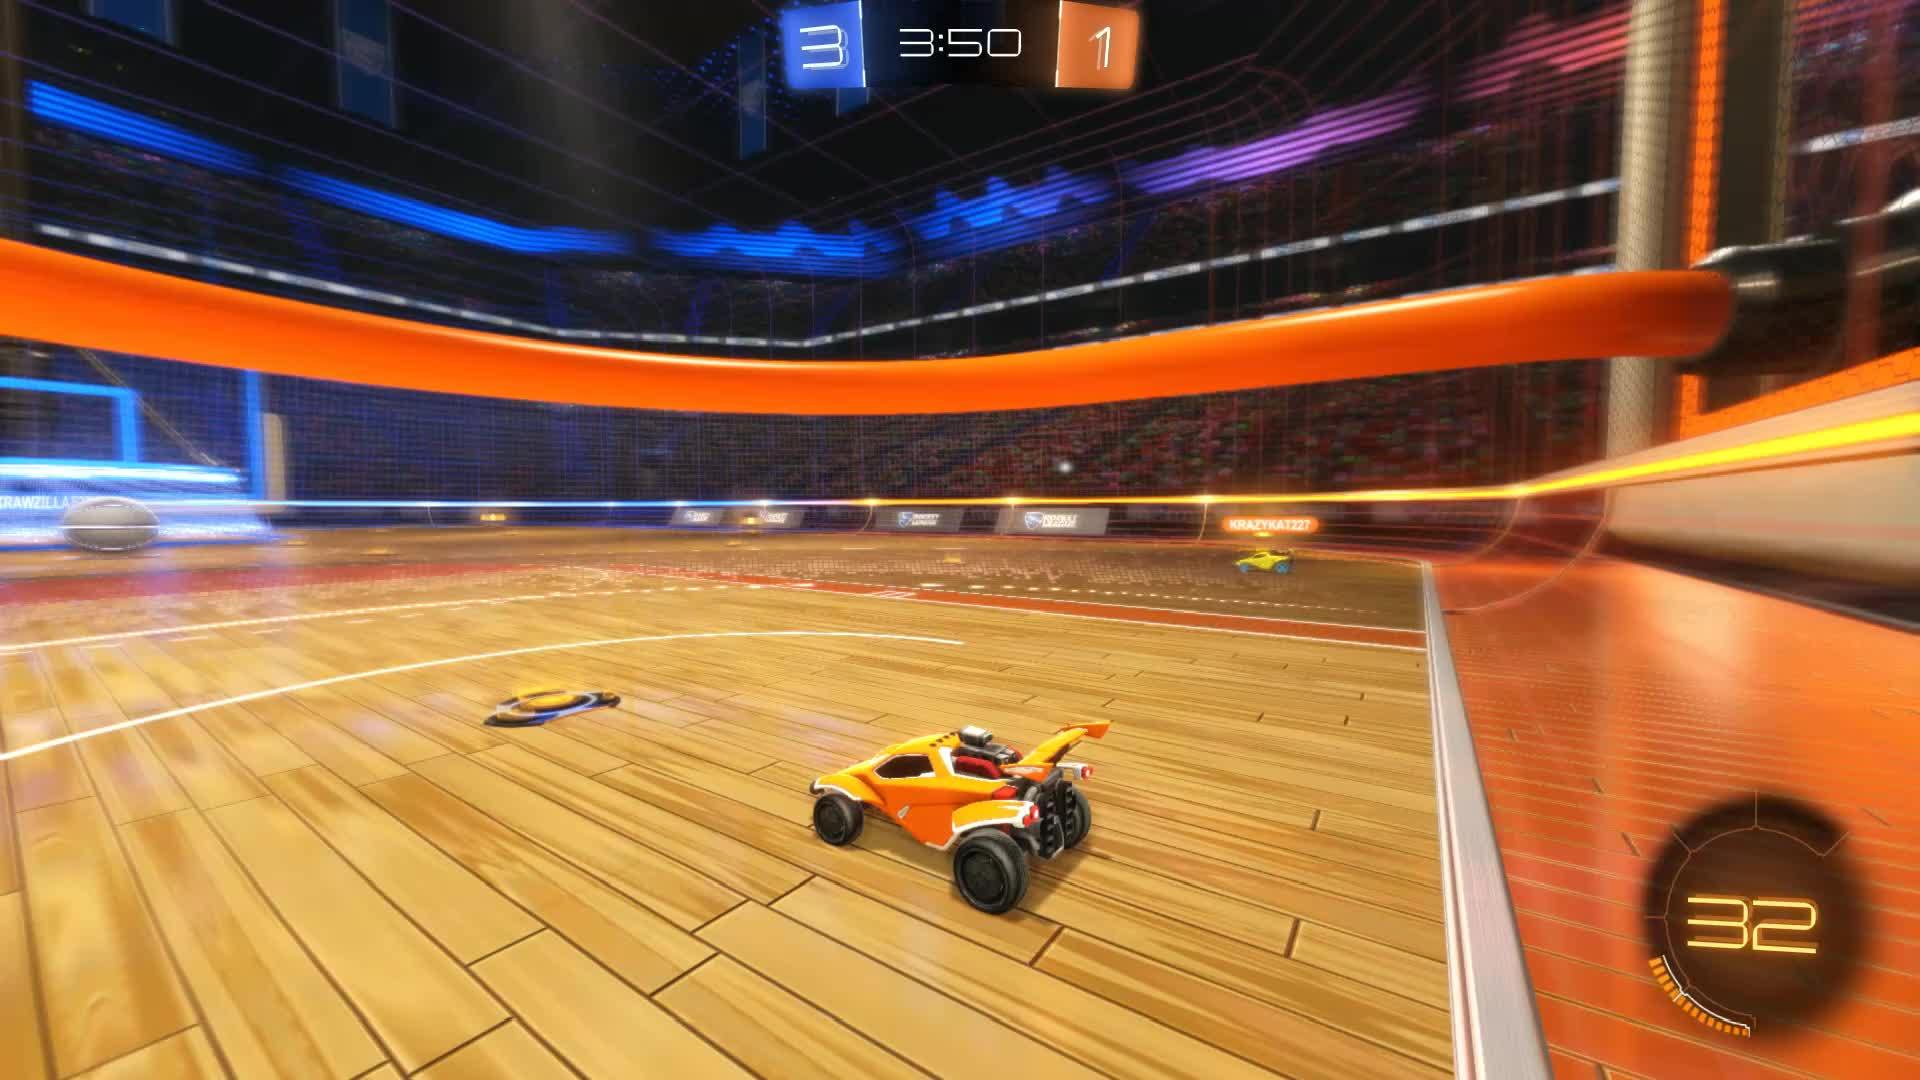 Geb, Gif Your Game, GifYourGame, Goal, Rocket League, RocketLeague, Goal 5: Geb GIFs